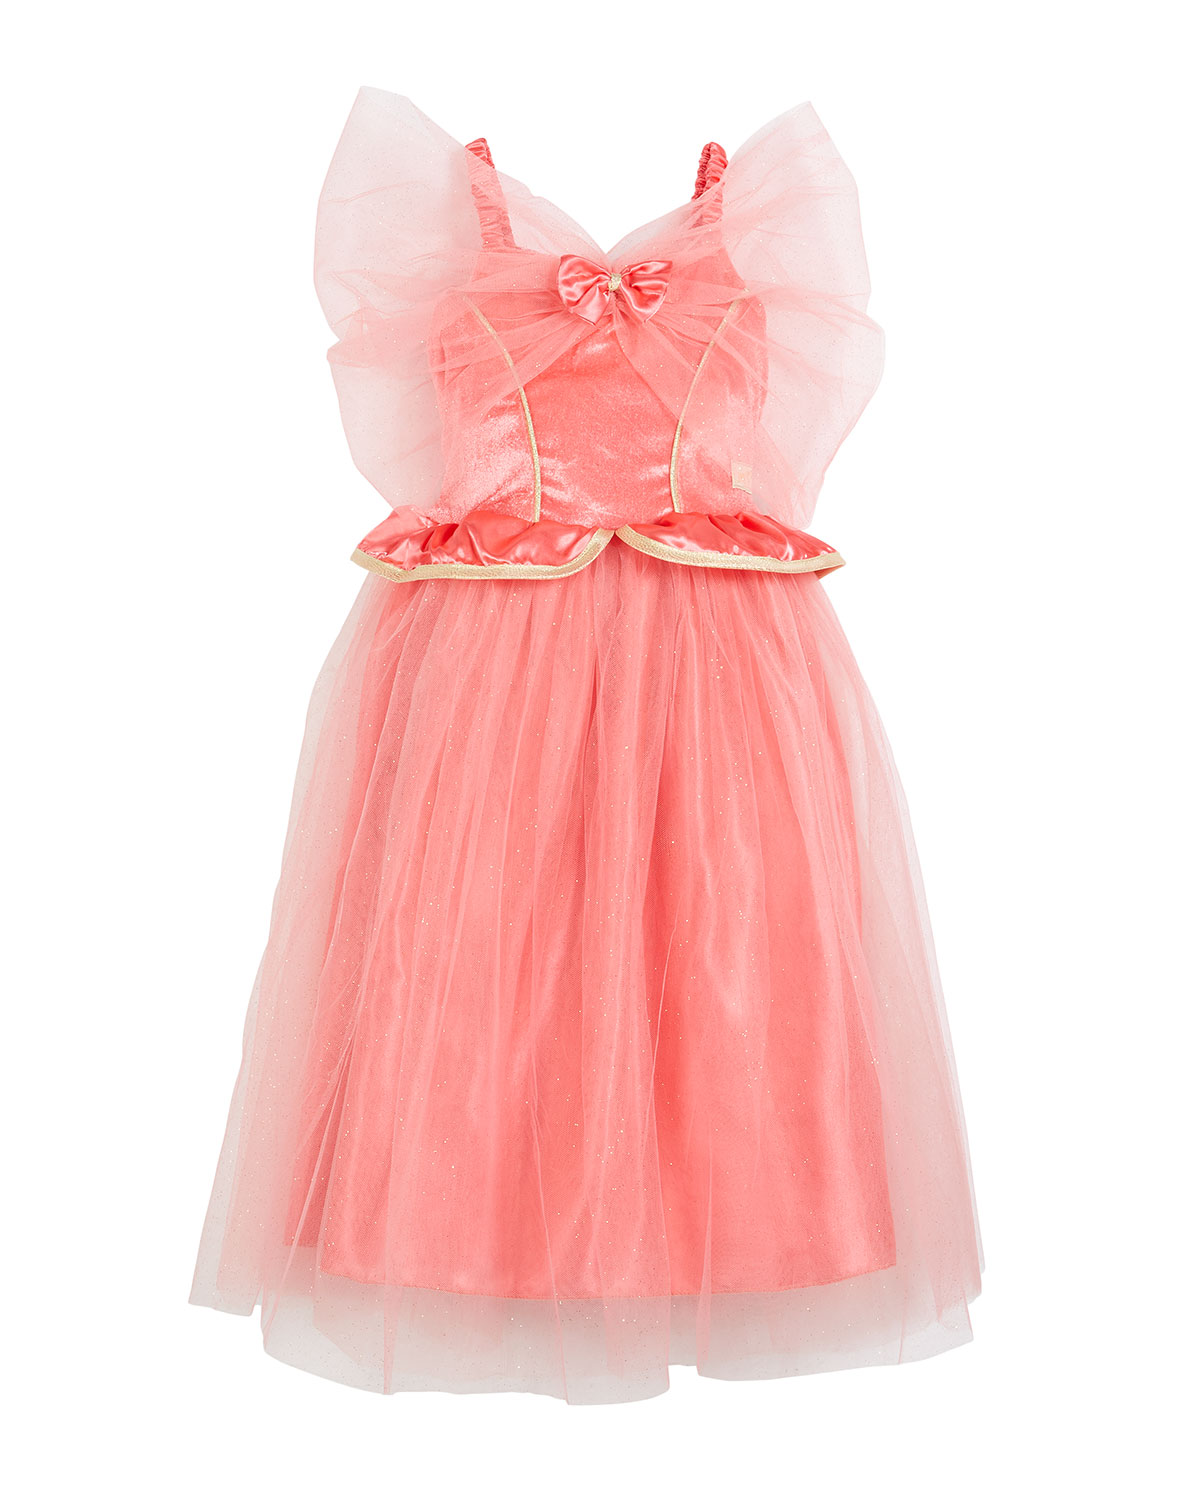 Kids Olivia Fairy Dress Costume 34 Years